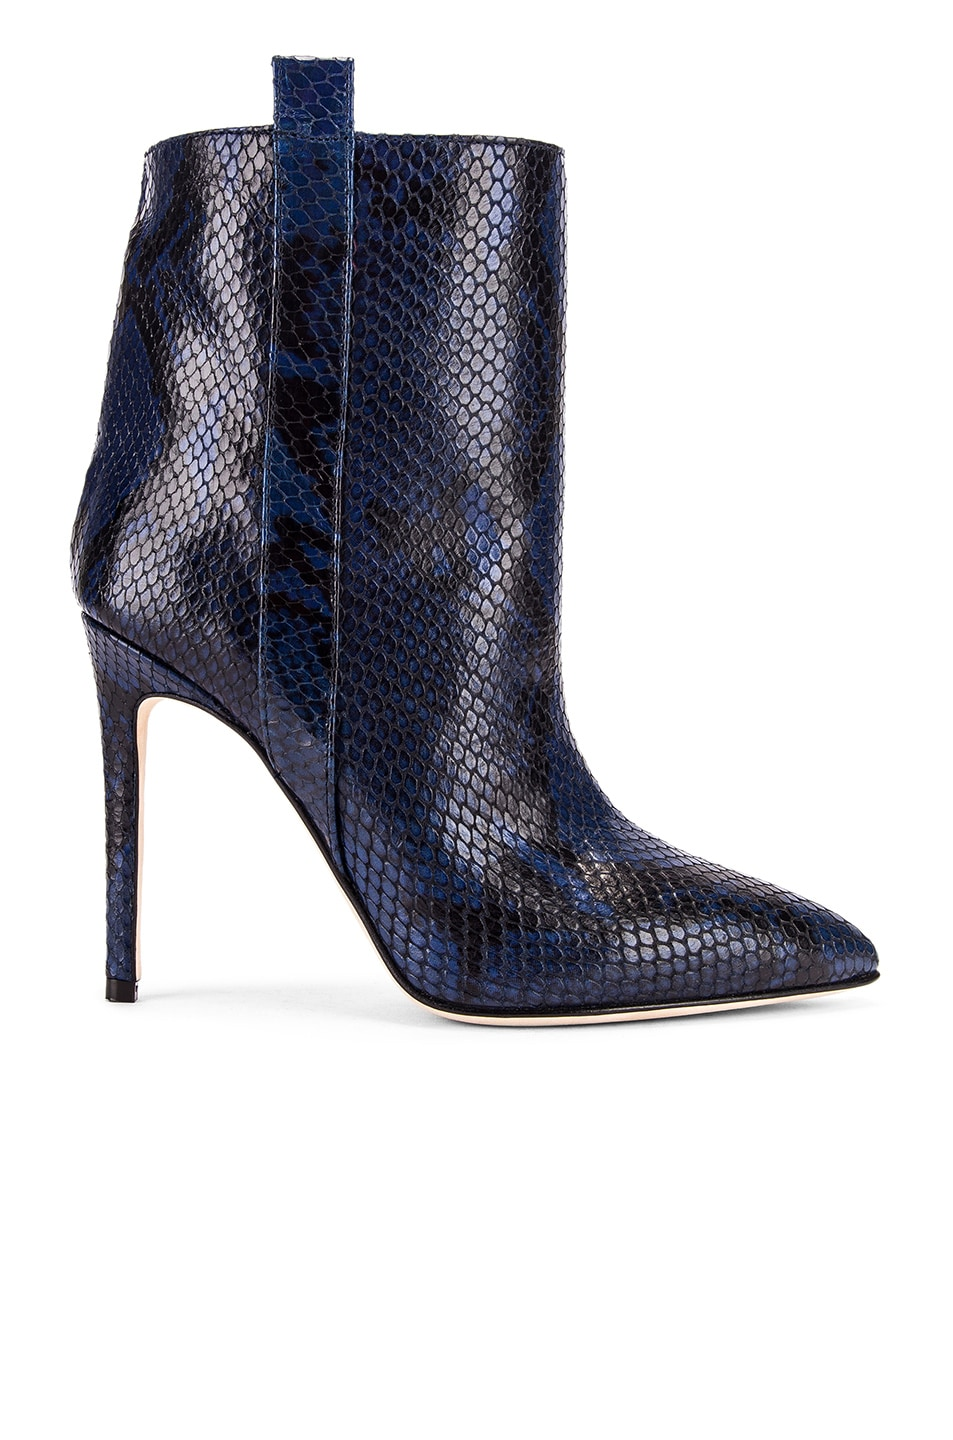 Image 1 of Paris Texas Snake Print Ankle Boot in Navy